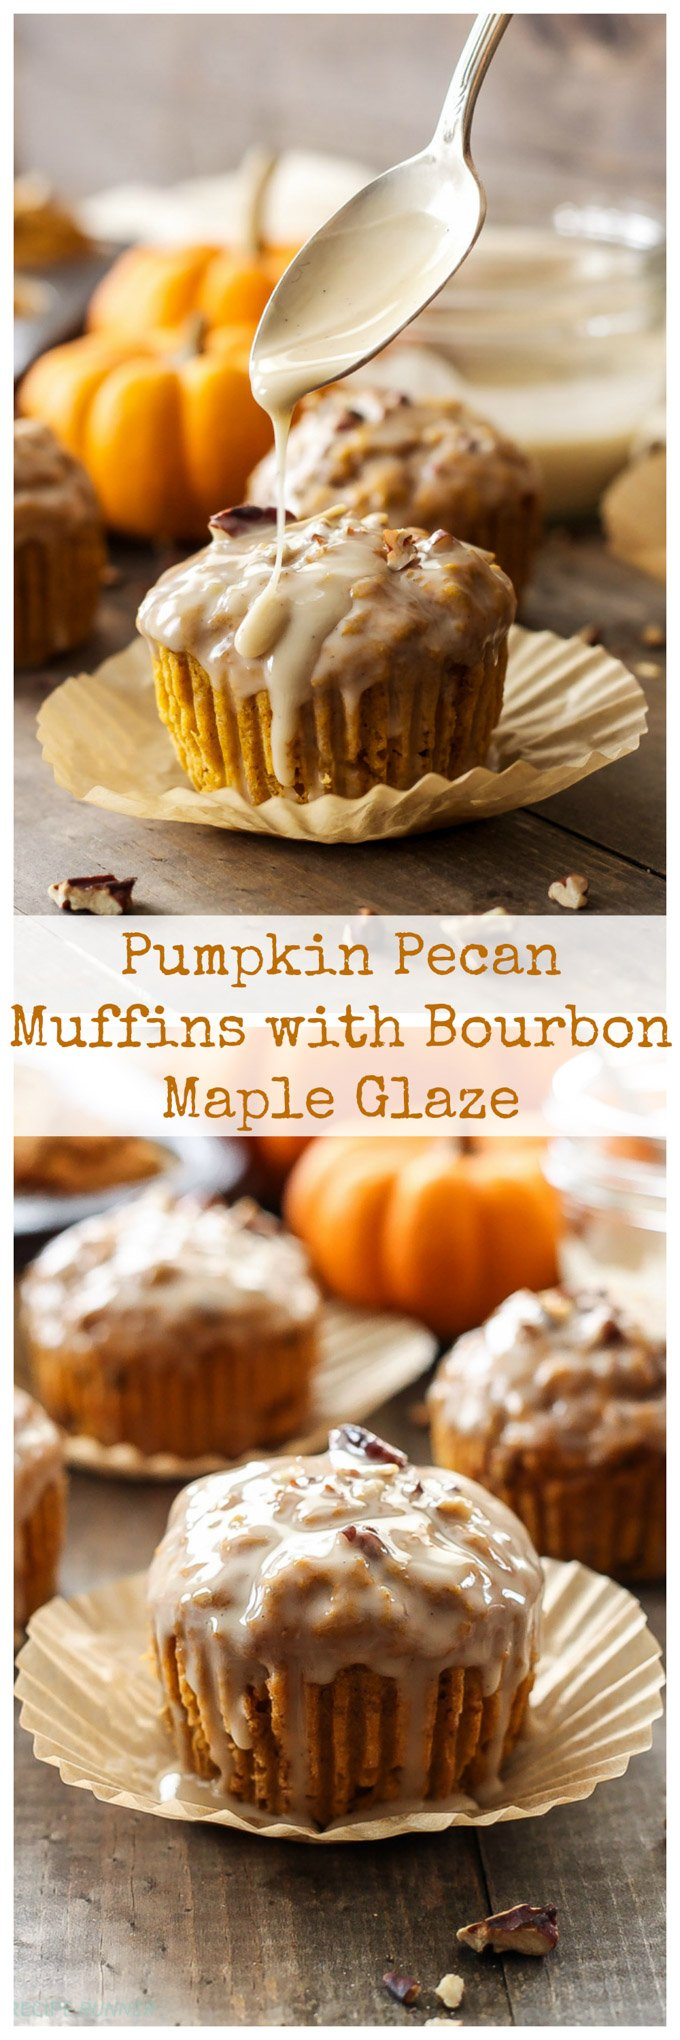 Pumpkin Pecan Muffins with Bourbon Maple Glaze | These aren't your average pumpkin muffins! The bourbon maple glaze puts them over the top!